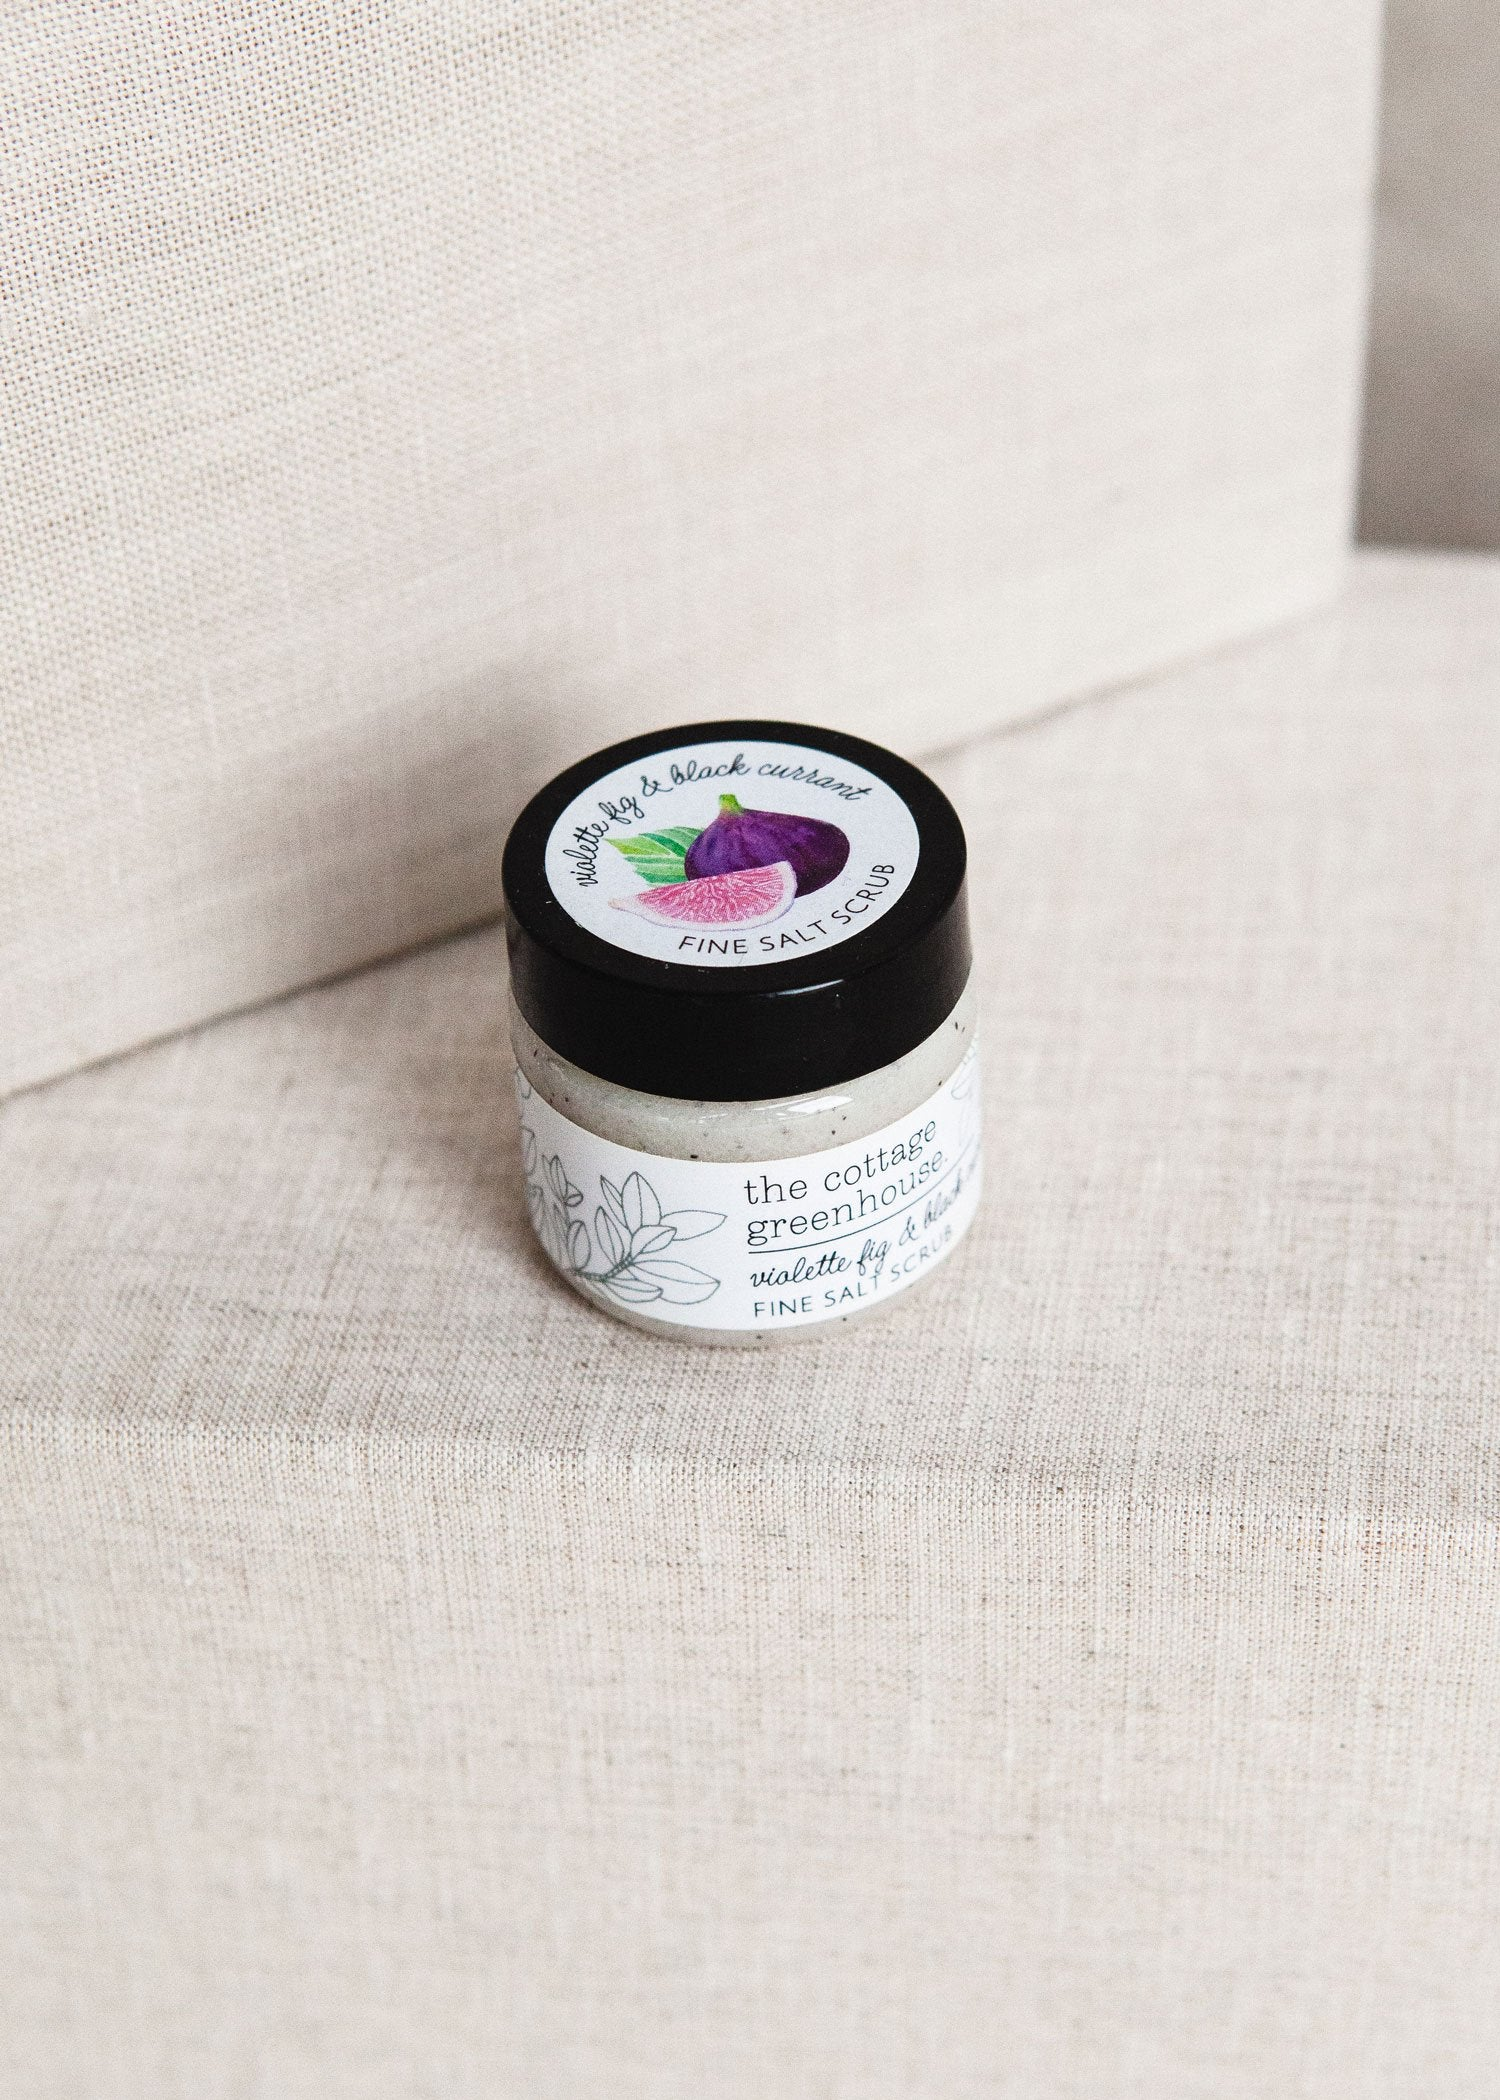 Violette Fig & Black Currant Travel Size Fine Salt Scrub